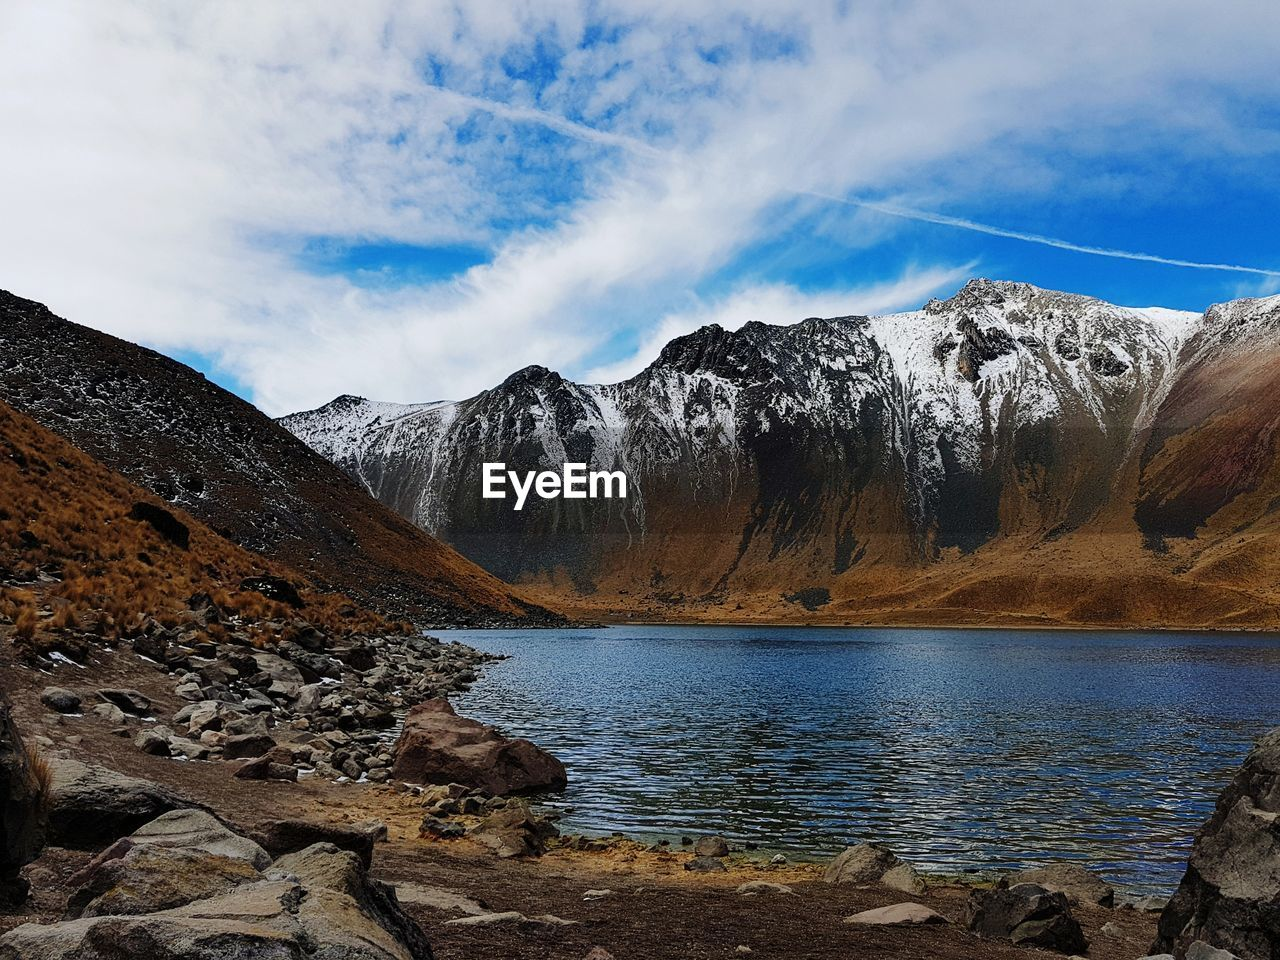 sky, scenics - nature, mountain, beauty in nature, water, tranquility, tranquil scene, cloud - sky, non-urban scene, rock, mountain range, nature, idyllic, solid, rock - object, no people, lake, winter, day, snowcapped mountain, formation, mountain peak